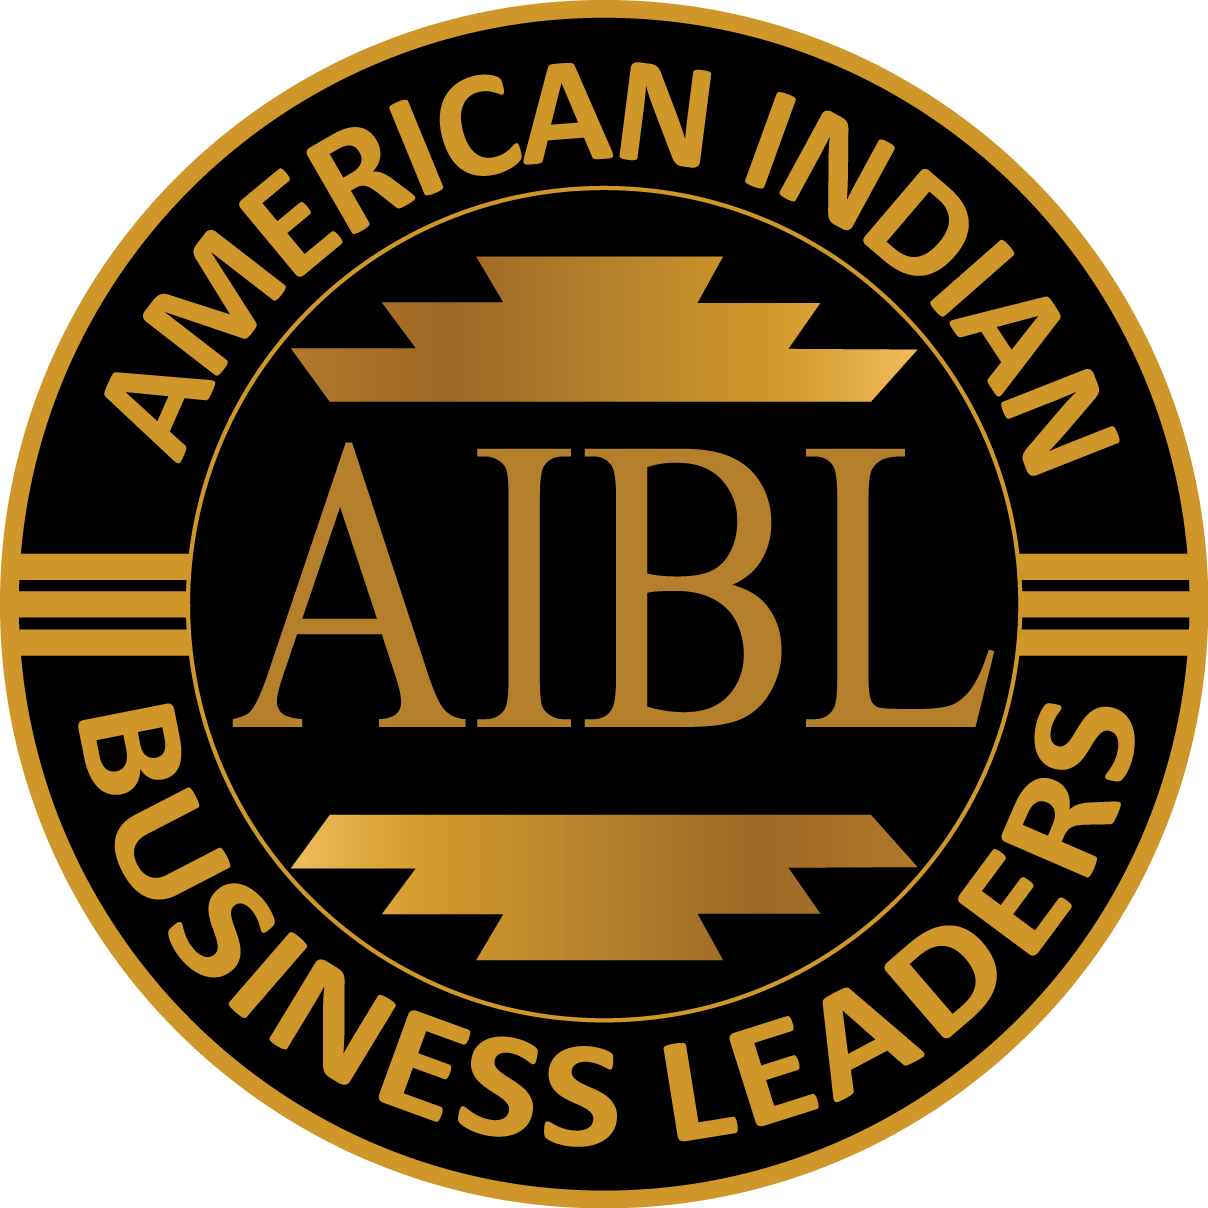 American Indian Business Leaders black and gold logo